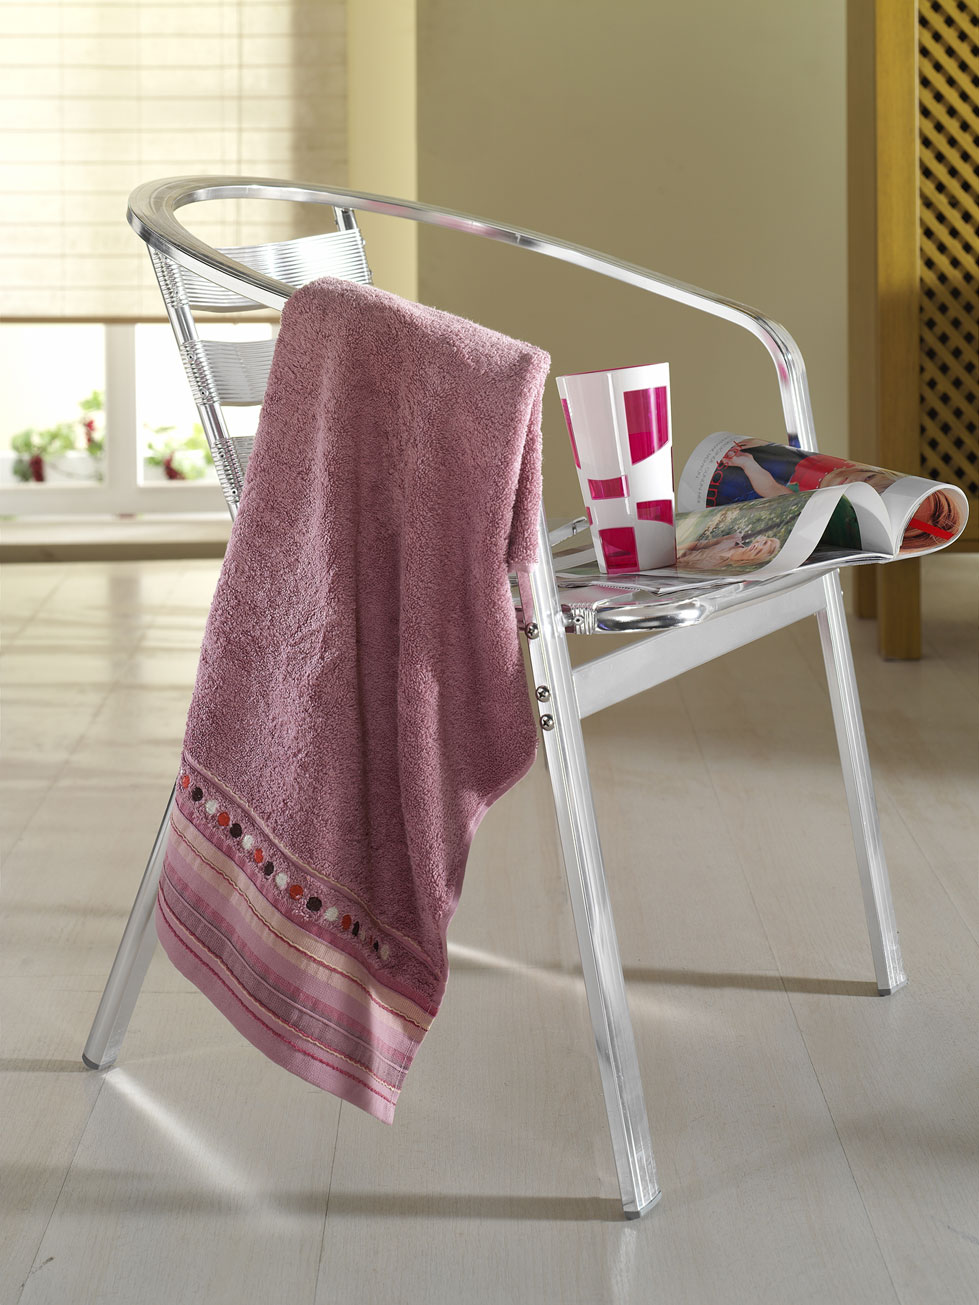 butterfly towels, wholesale colored bath towels, wholesale colored bath towels, pig print kitchen towels